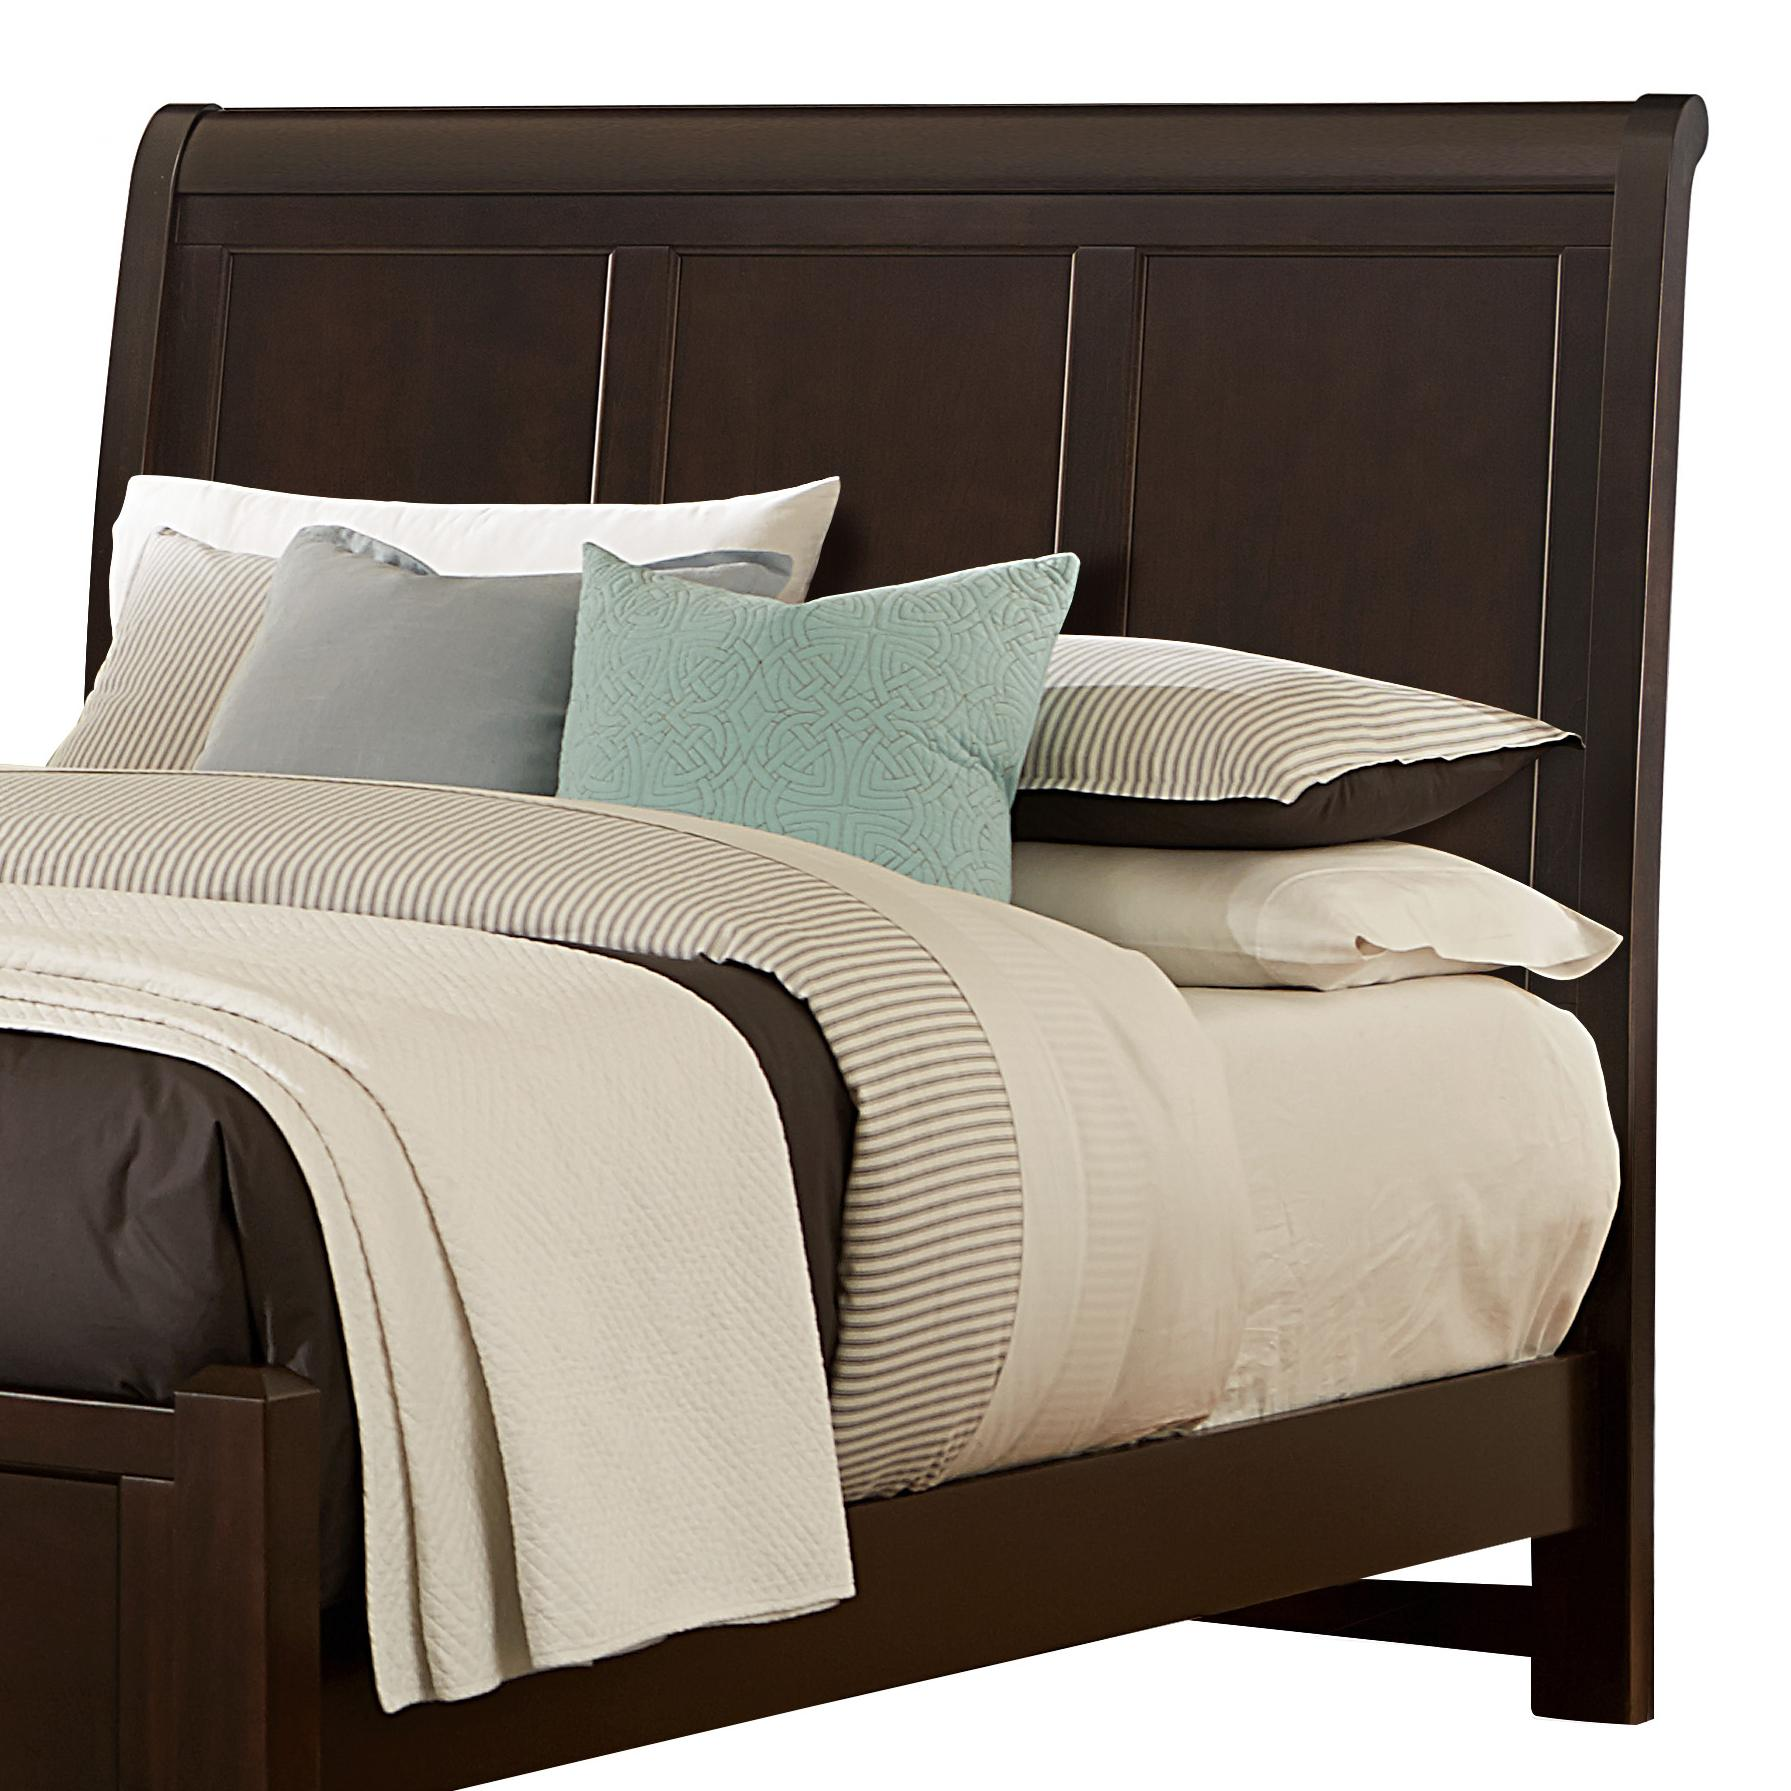 Vaughan Bassett Bonanza Full Sleigh Headboard - Item Number: BB27-441